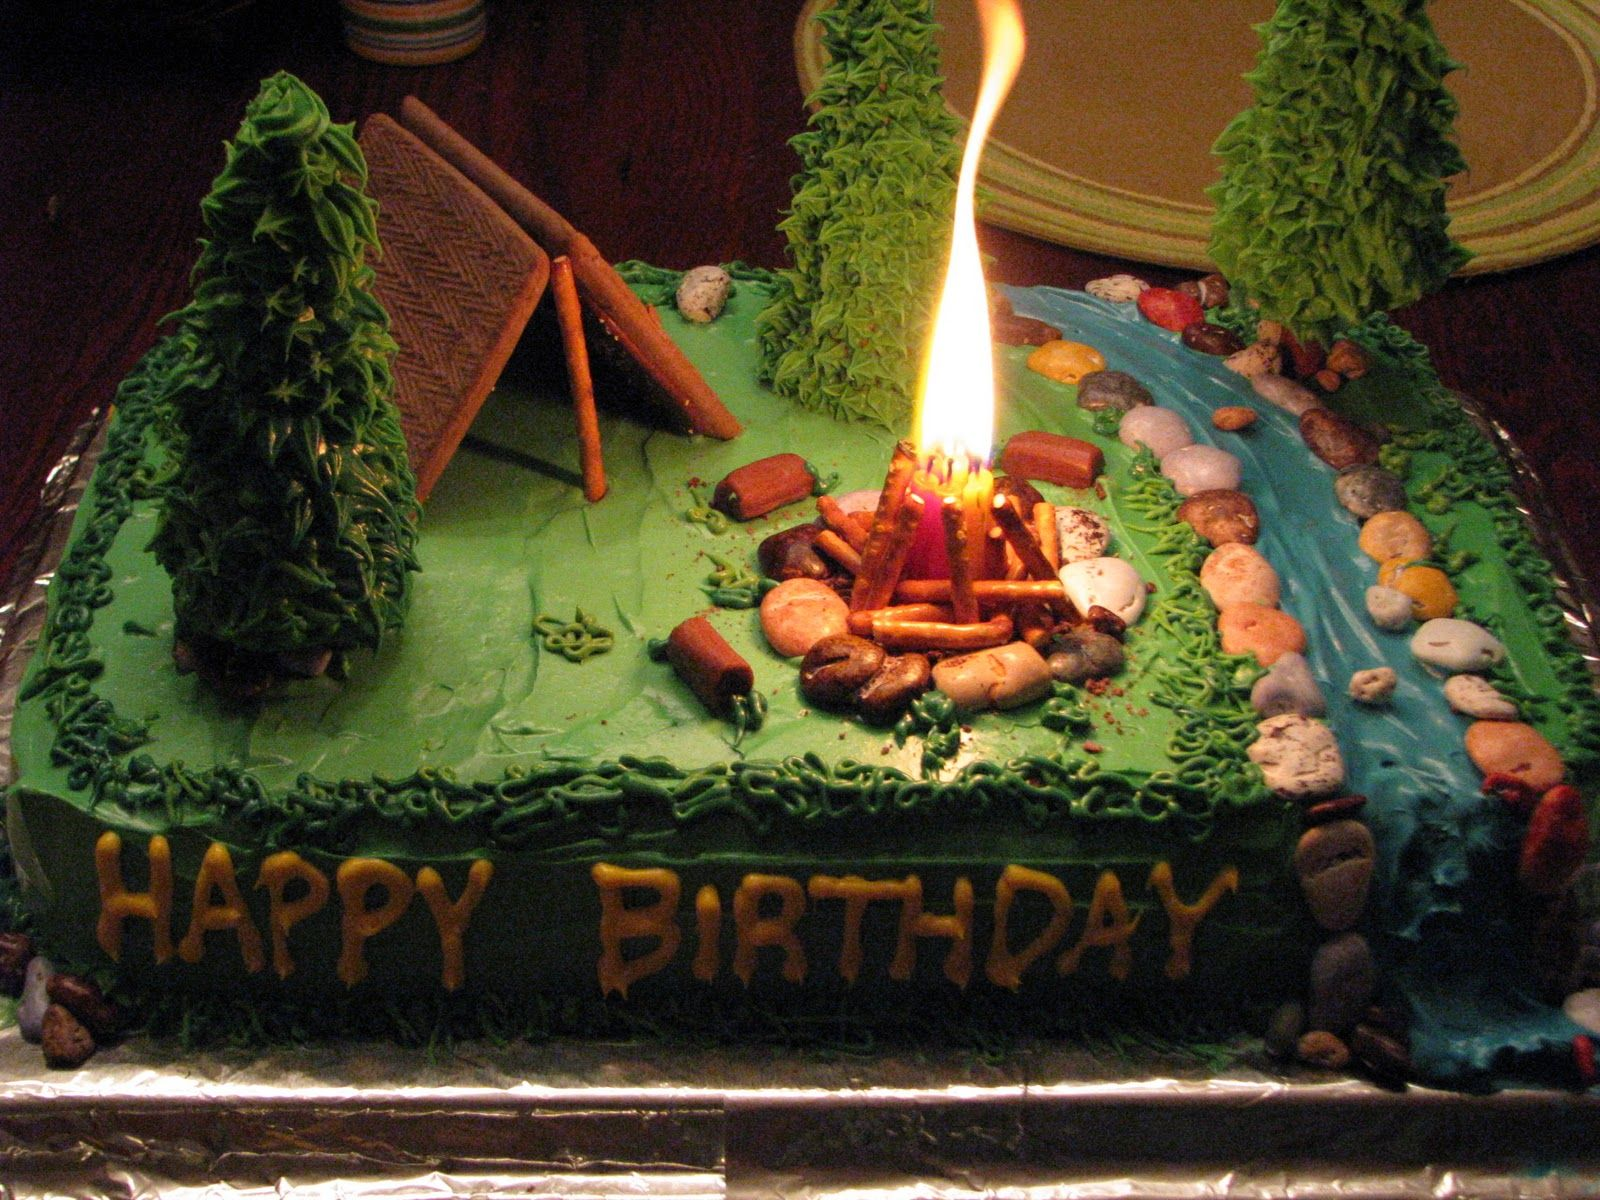 Gmail theme fox - Camping Cake So Cool If You Decide To Do A Camping Theme The